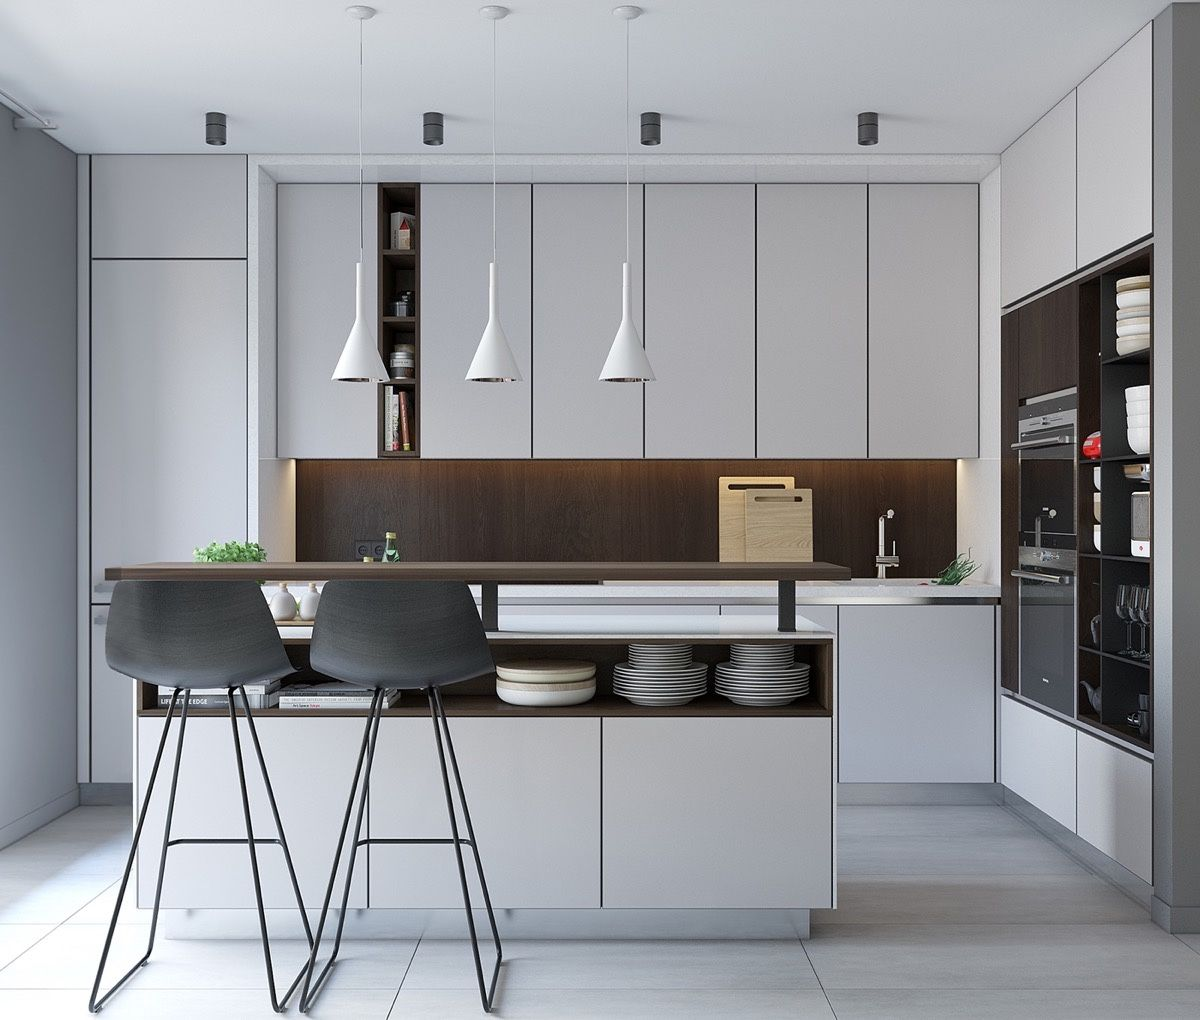 40 minimalist kitchens to get super sleek inspiration | kitchen